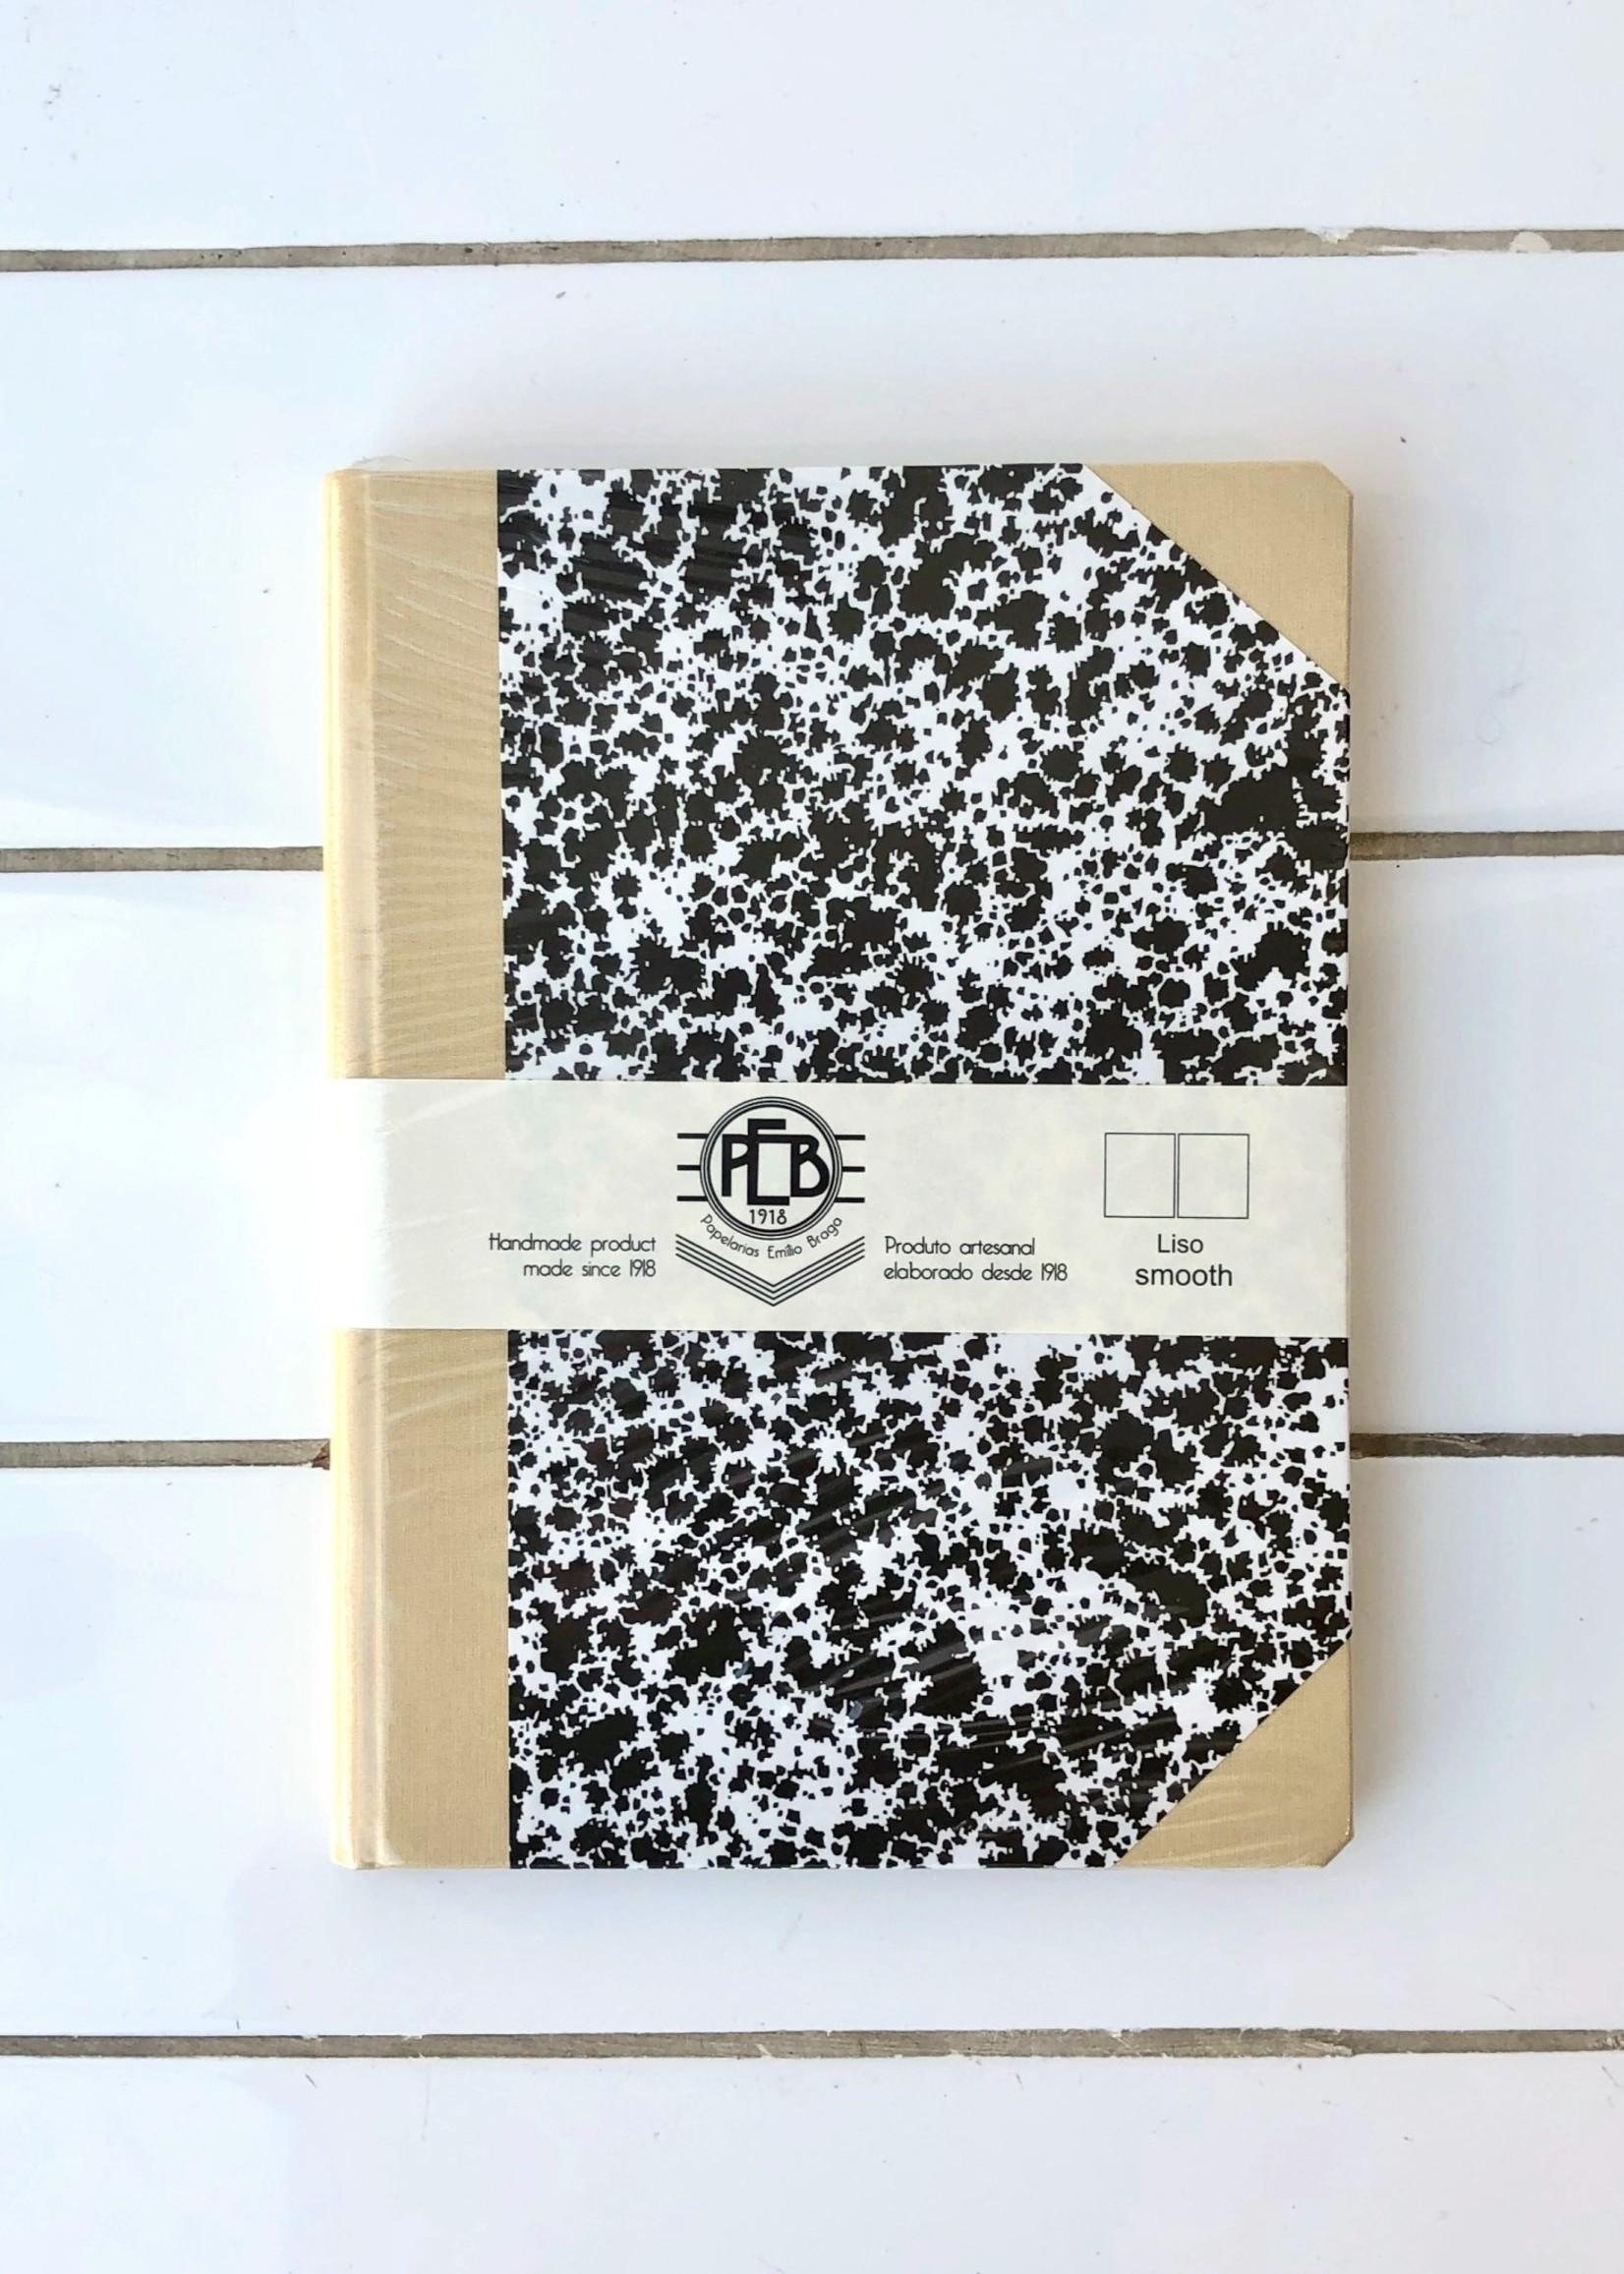 Emilio Braga  Peb Cloth Cloud Stetchbook  A5